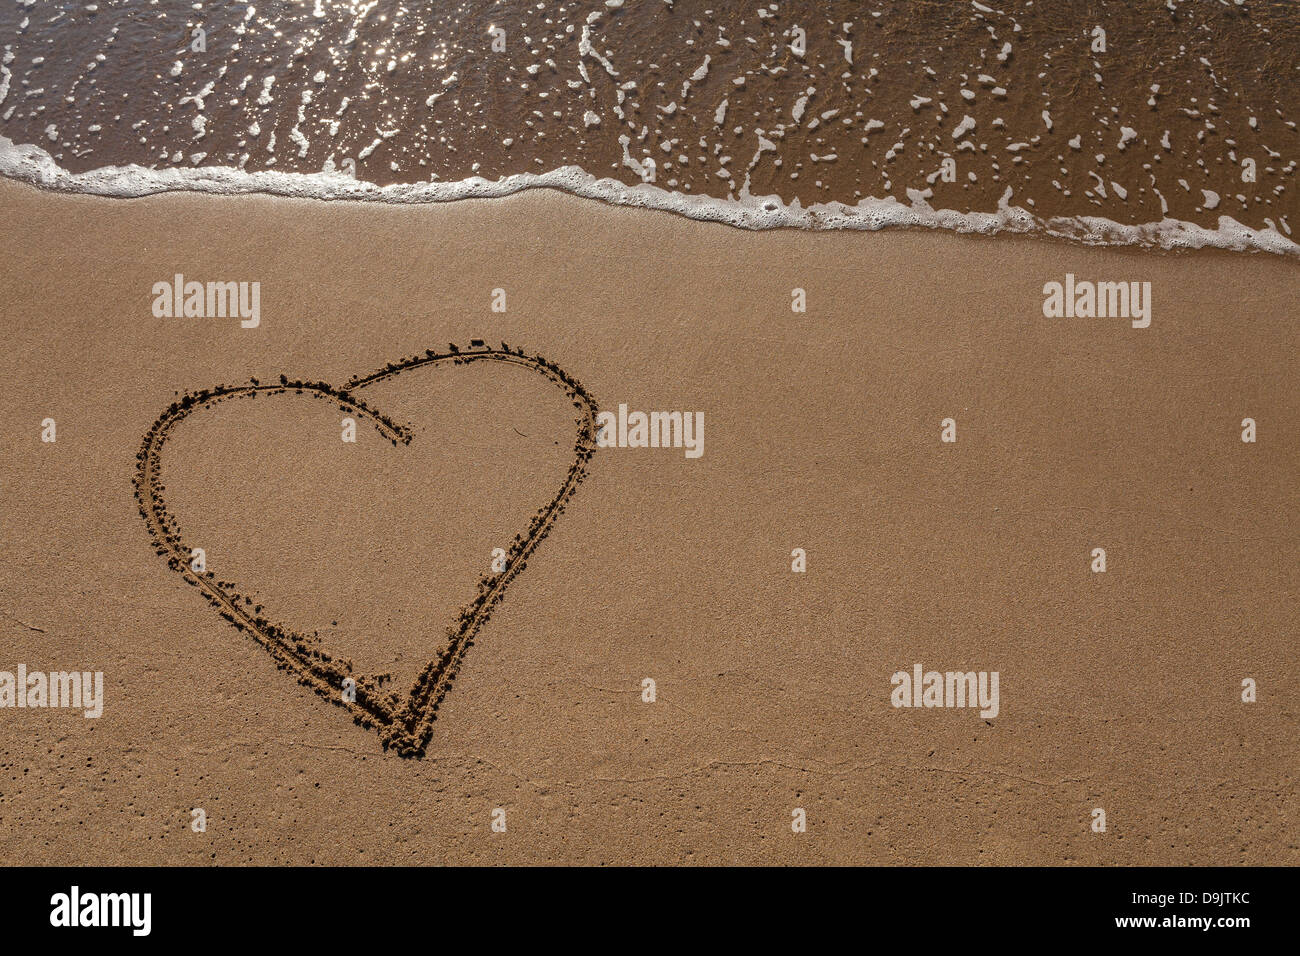 Heart written on sand - Stock Image